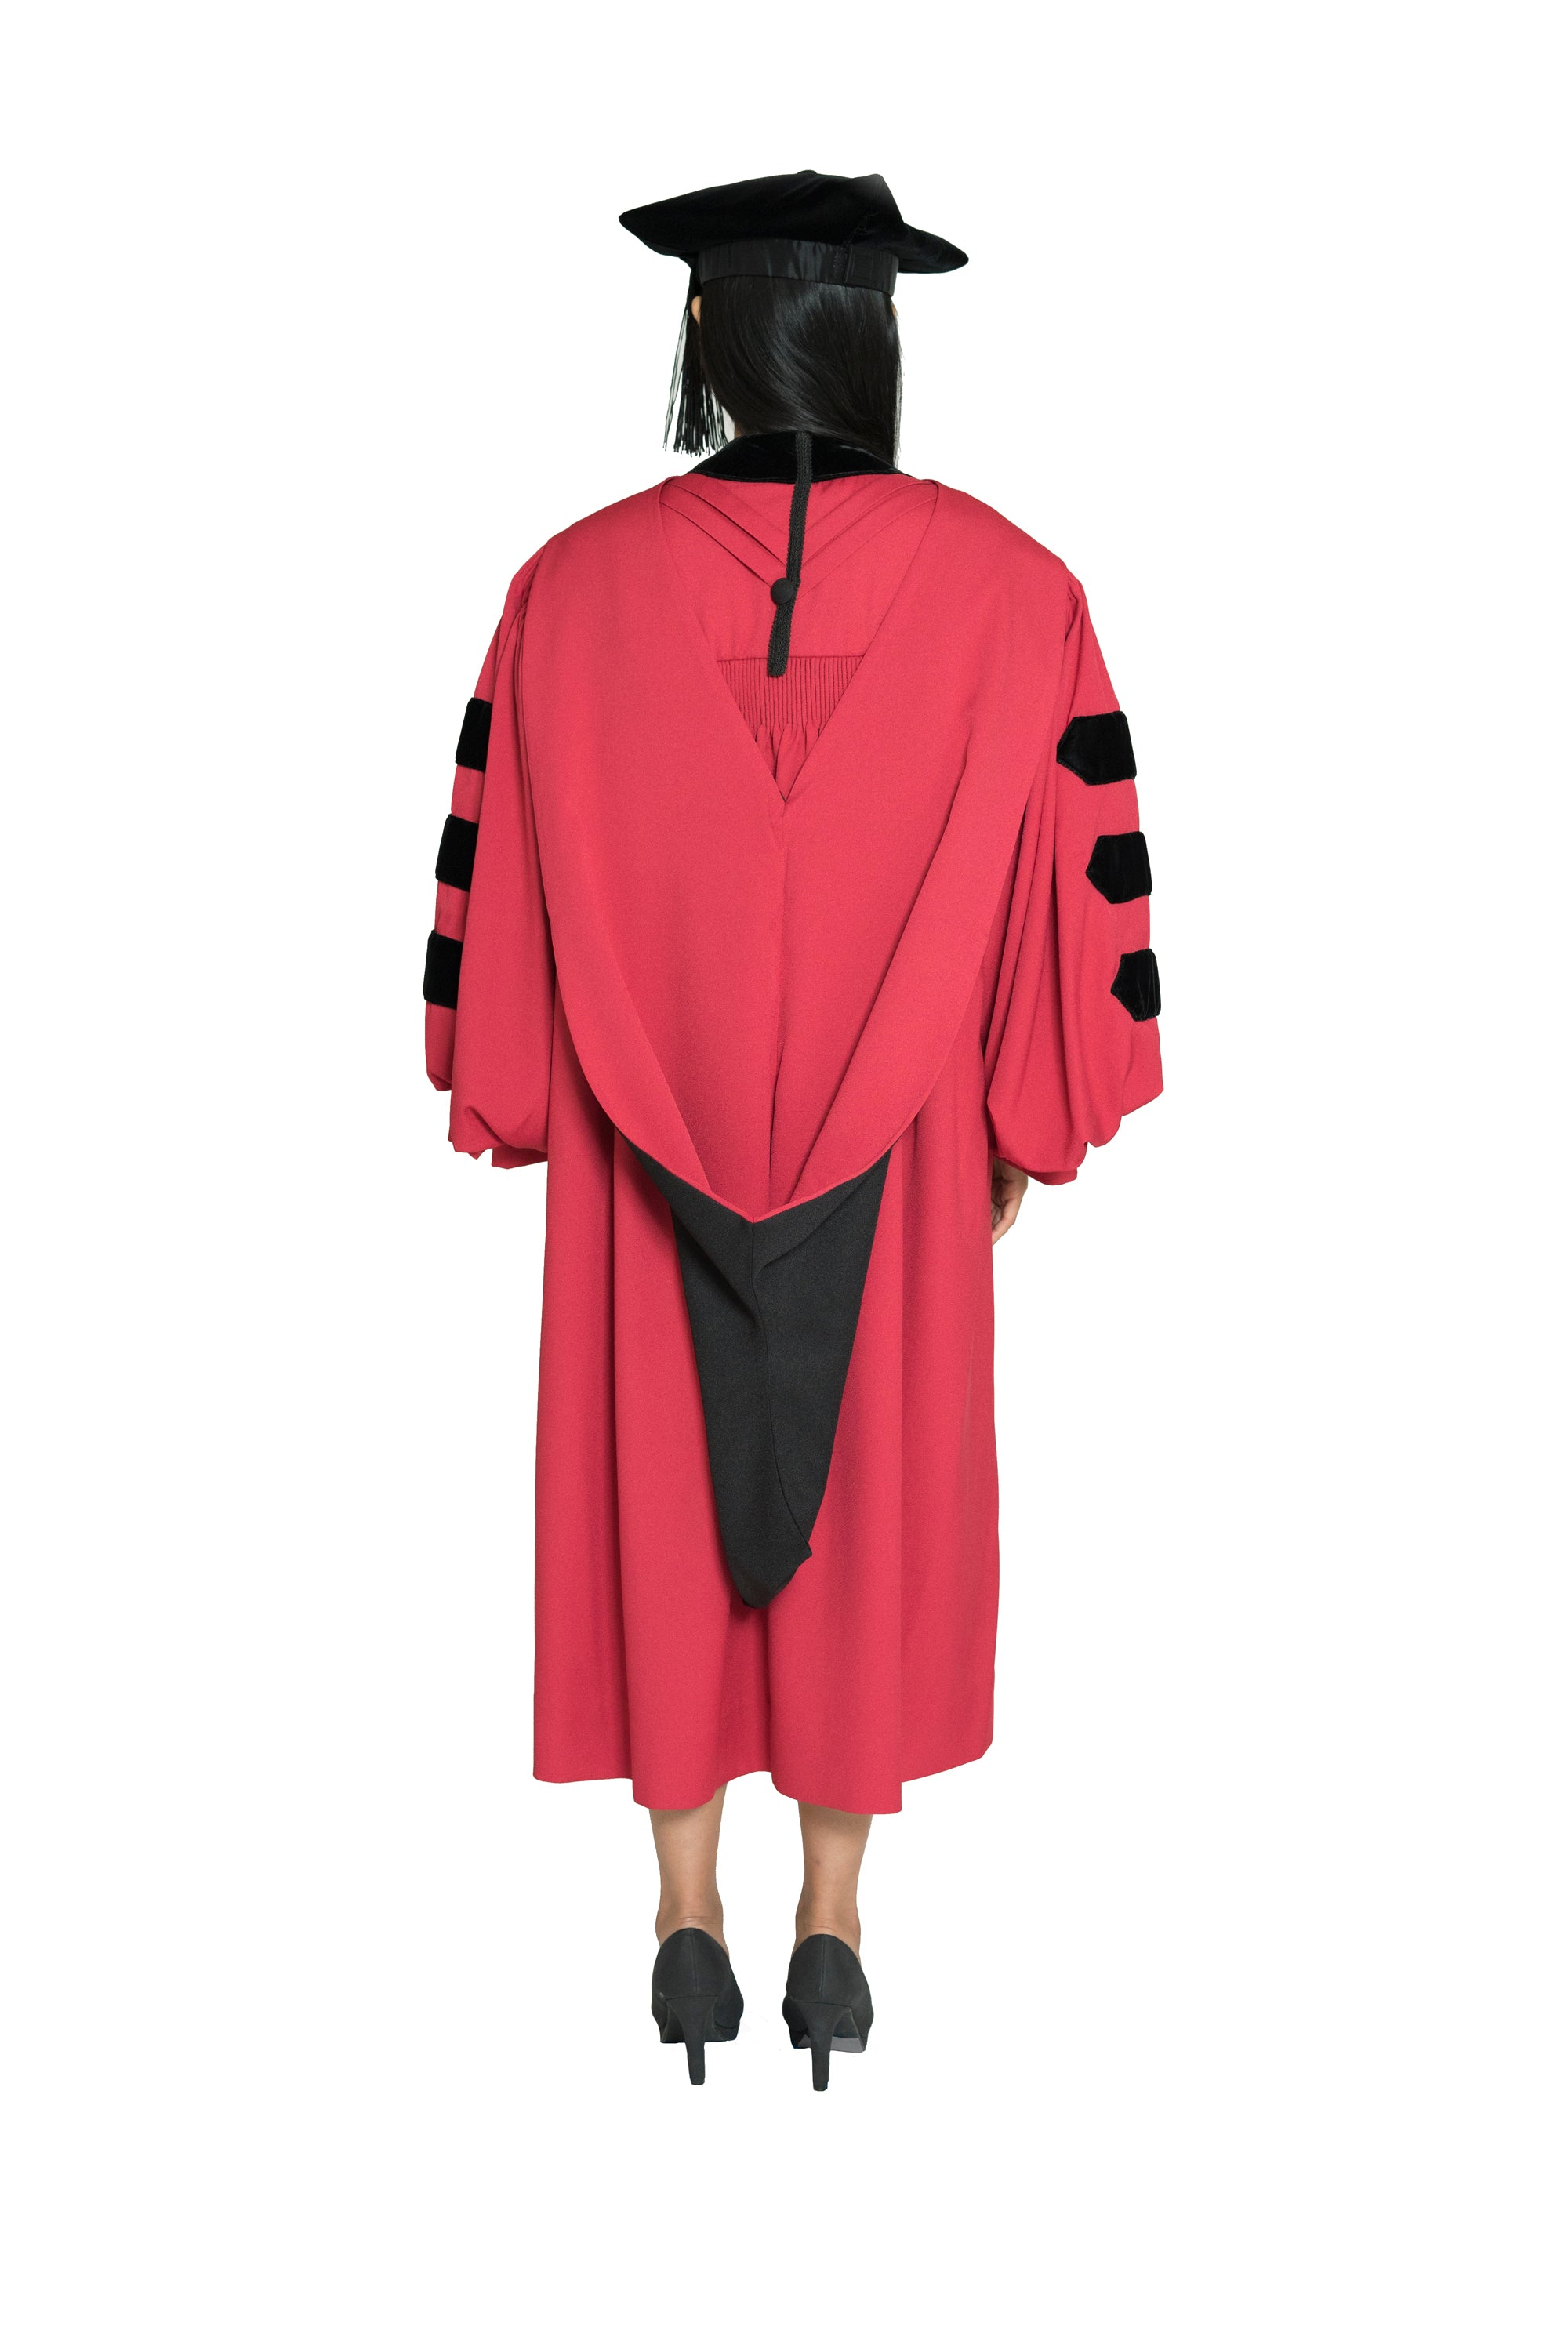 Harvard University Doctoral Regalia, PhD Gown, Doctoral Hood, and 4-sided Velvet Cap / Tam